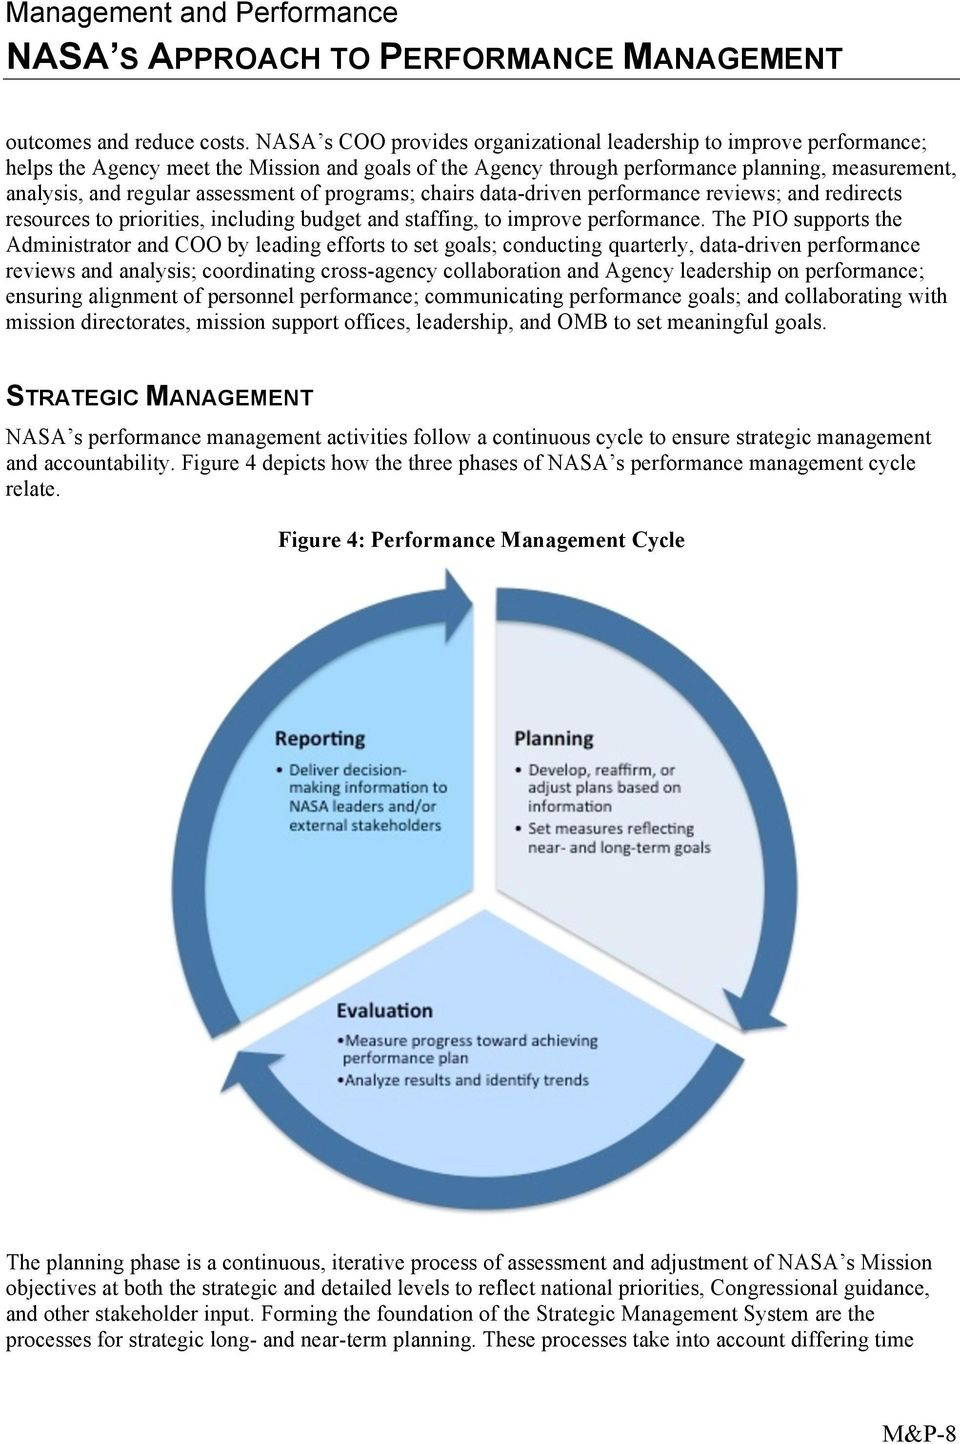 assessment of programs; chairs data-driven performance reviews; and redirects resources to priorities, including budget and staffing, to improve performance.